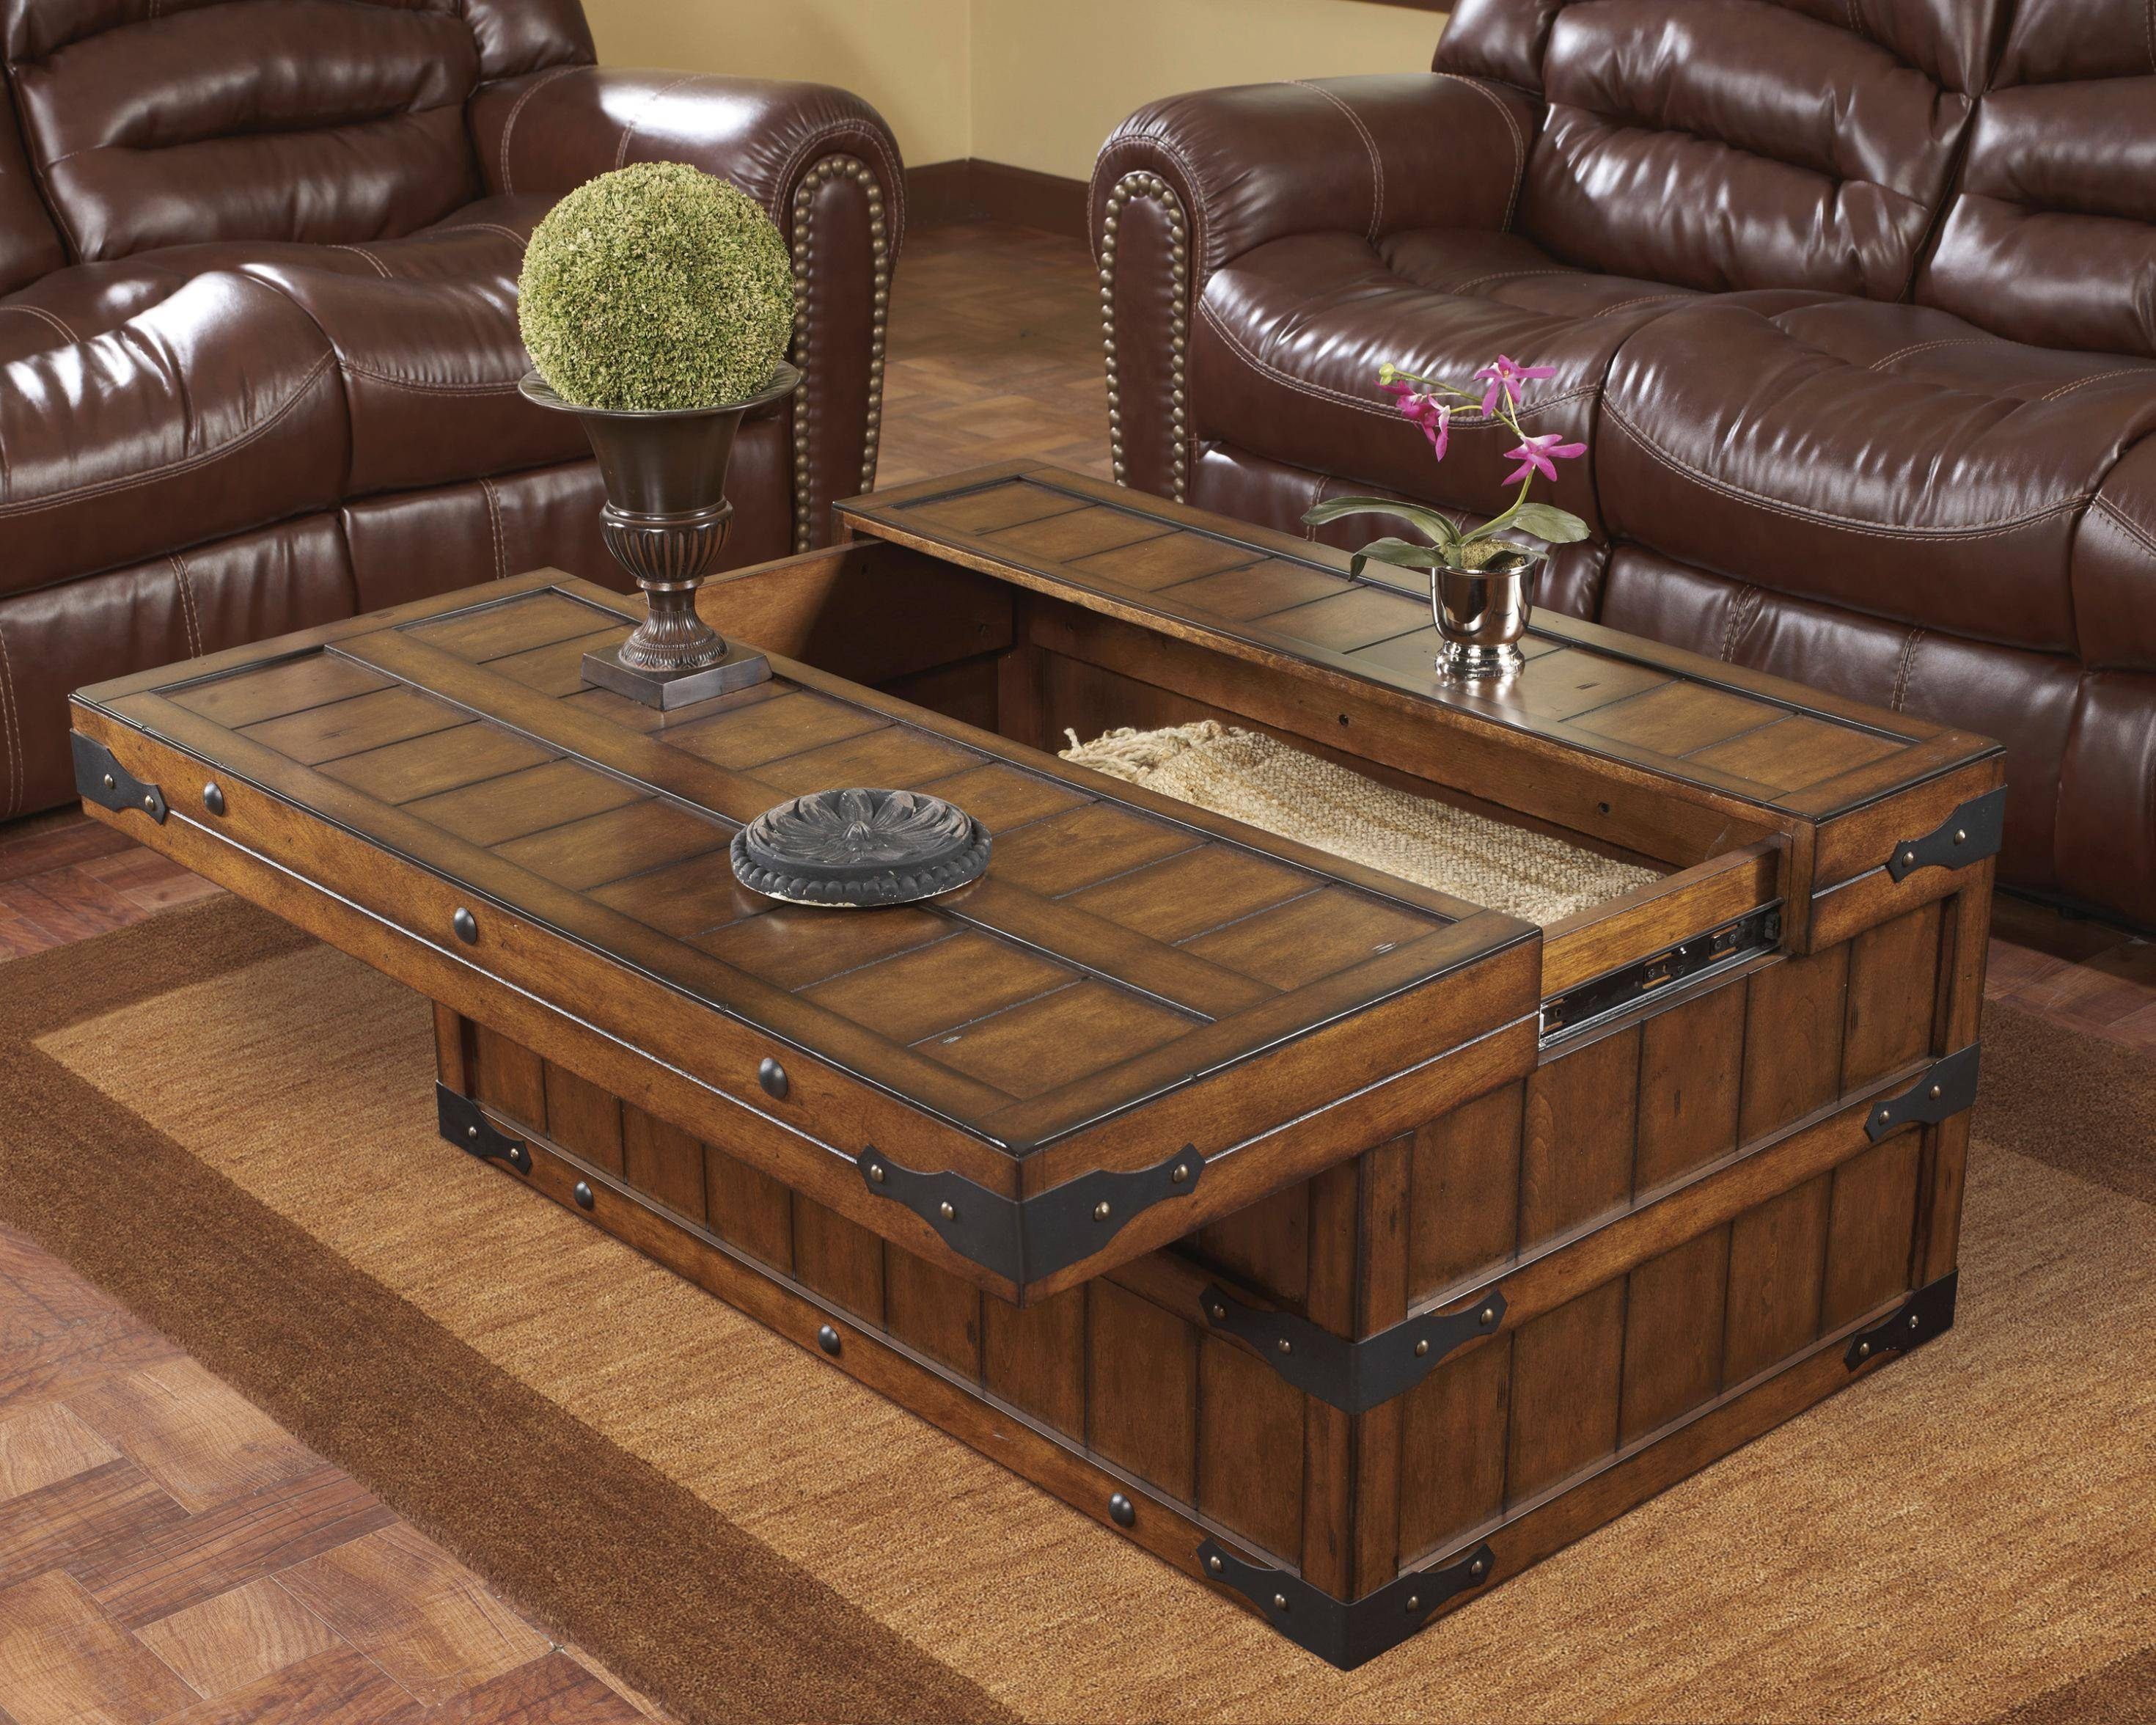 Coffee Table. Chic Coffee Table Trunk Designs: Elegant Gray for Hardwood Coffee Tables With Storage (Image 3 of 30)